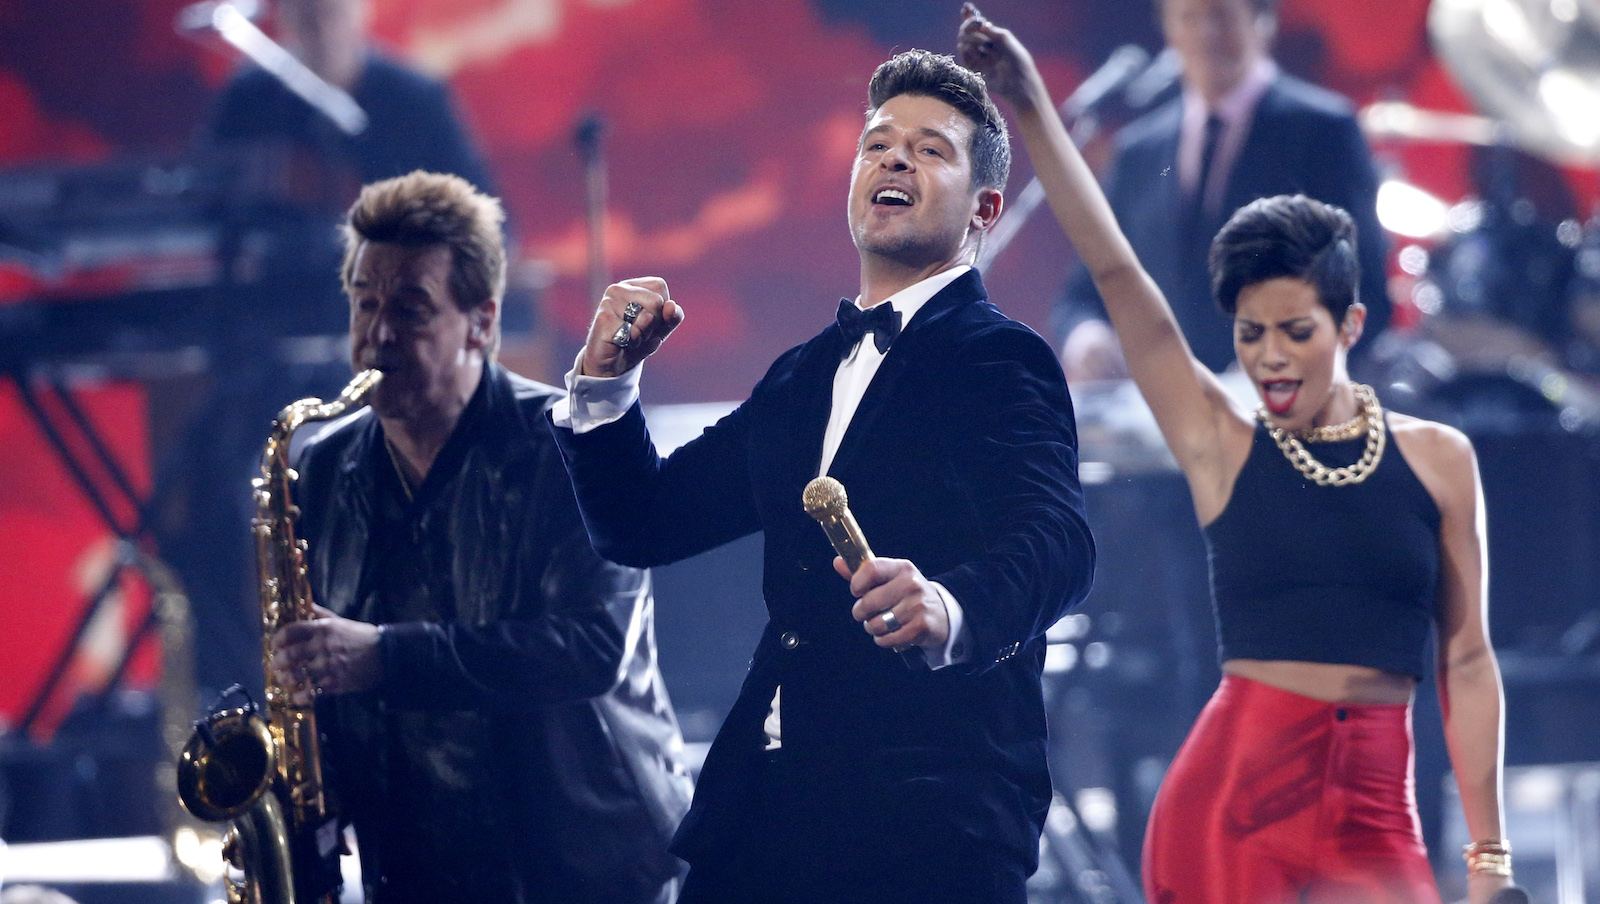 """Robin Thicke (C) and Chicago perform a medley of """"Does Anyone Really Know what Time It is,"""" """"Beginnings,"""" """"Saturday in the Park"""" and """"Blurred Lines"""" at the 56th annual Grammy Awards in Los Angeles, California January 26, 2014.    REUTERS/Mario Anzuoni (UNITED STATES  - Tags: ENTERTAINMENT)   (GRAMMYS-SHOW) - RTX17W9I"""